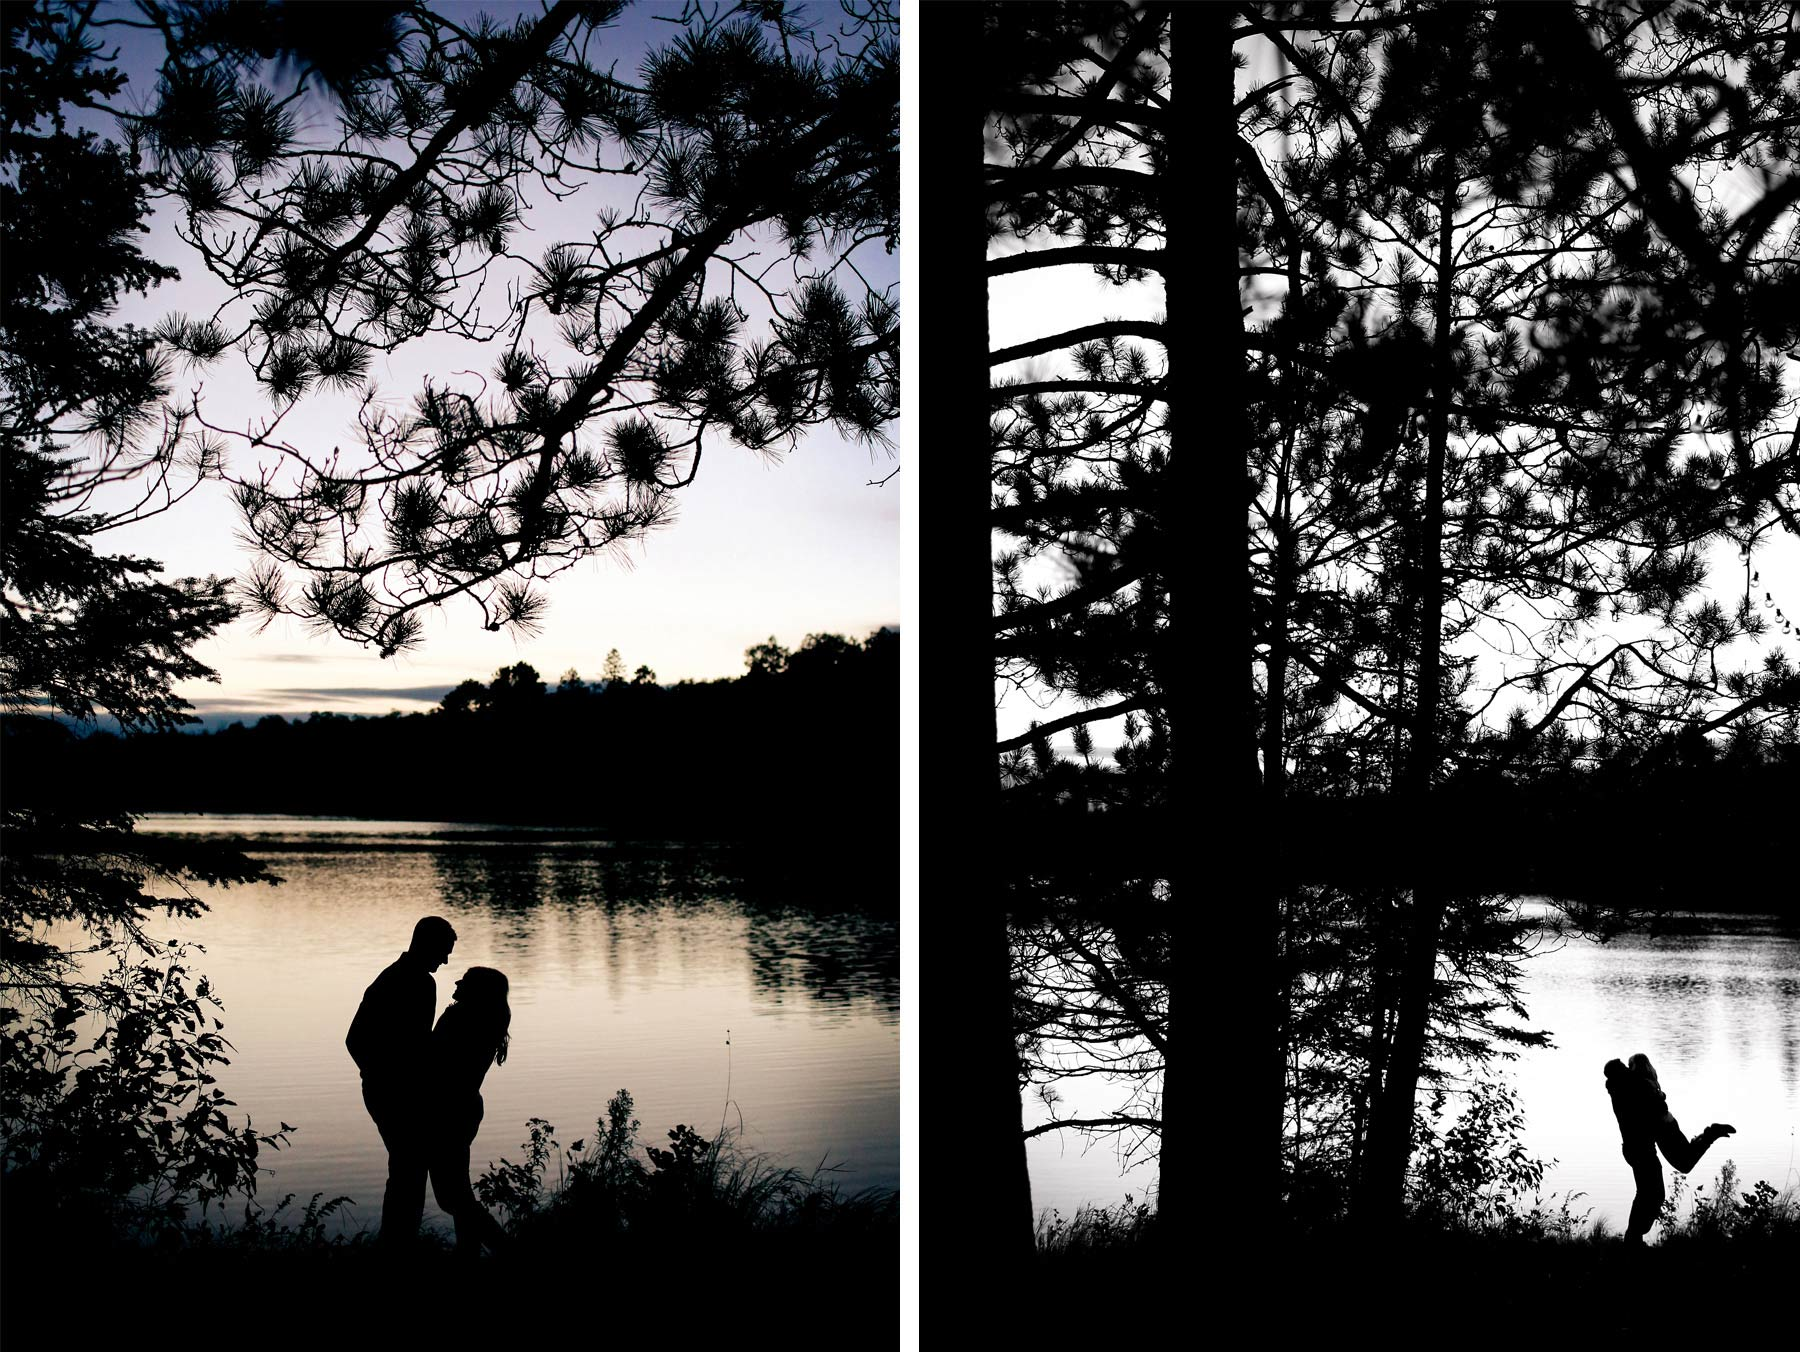 06-Duluth-Minnesota-Engagement-Photography-by-Vick-Photography-Rustic-Woods-Nature-Lake-Destination-Engagement.jpg